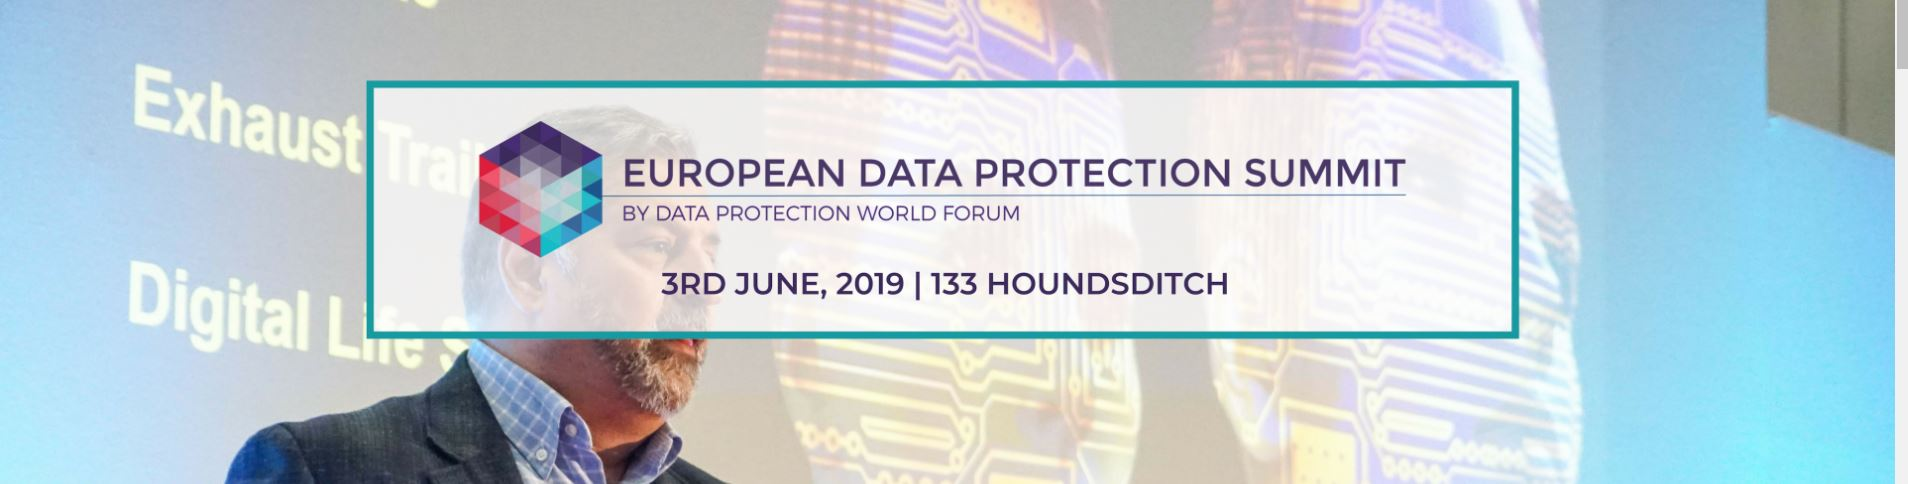 European Data Protection Summit June 3rd 2